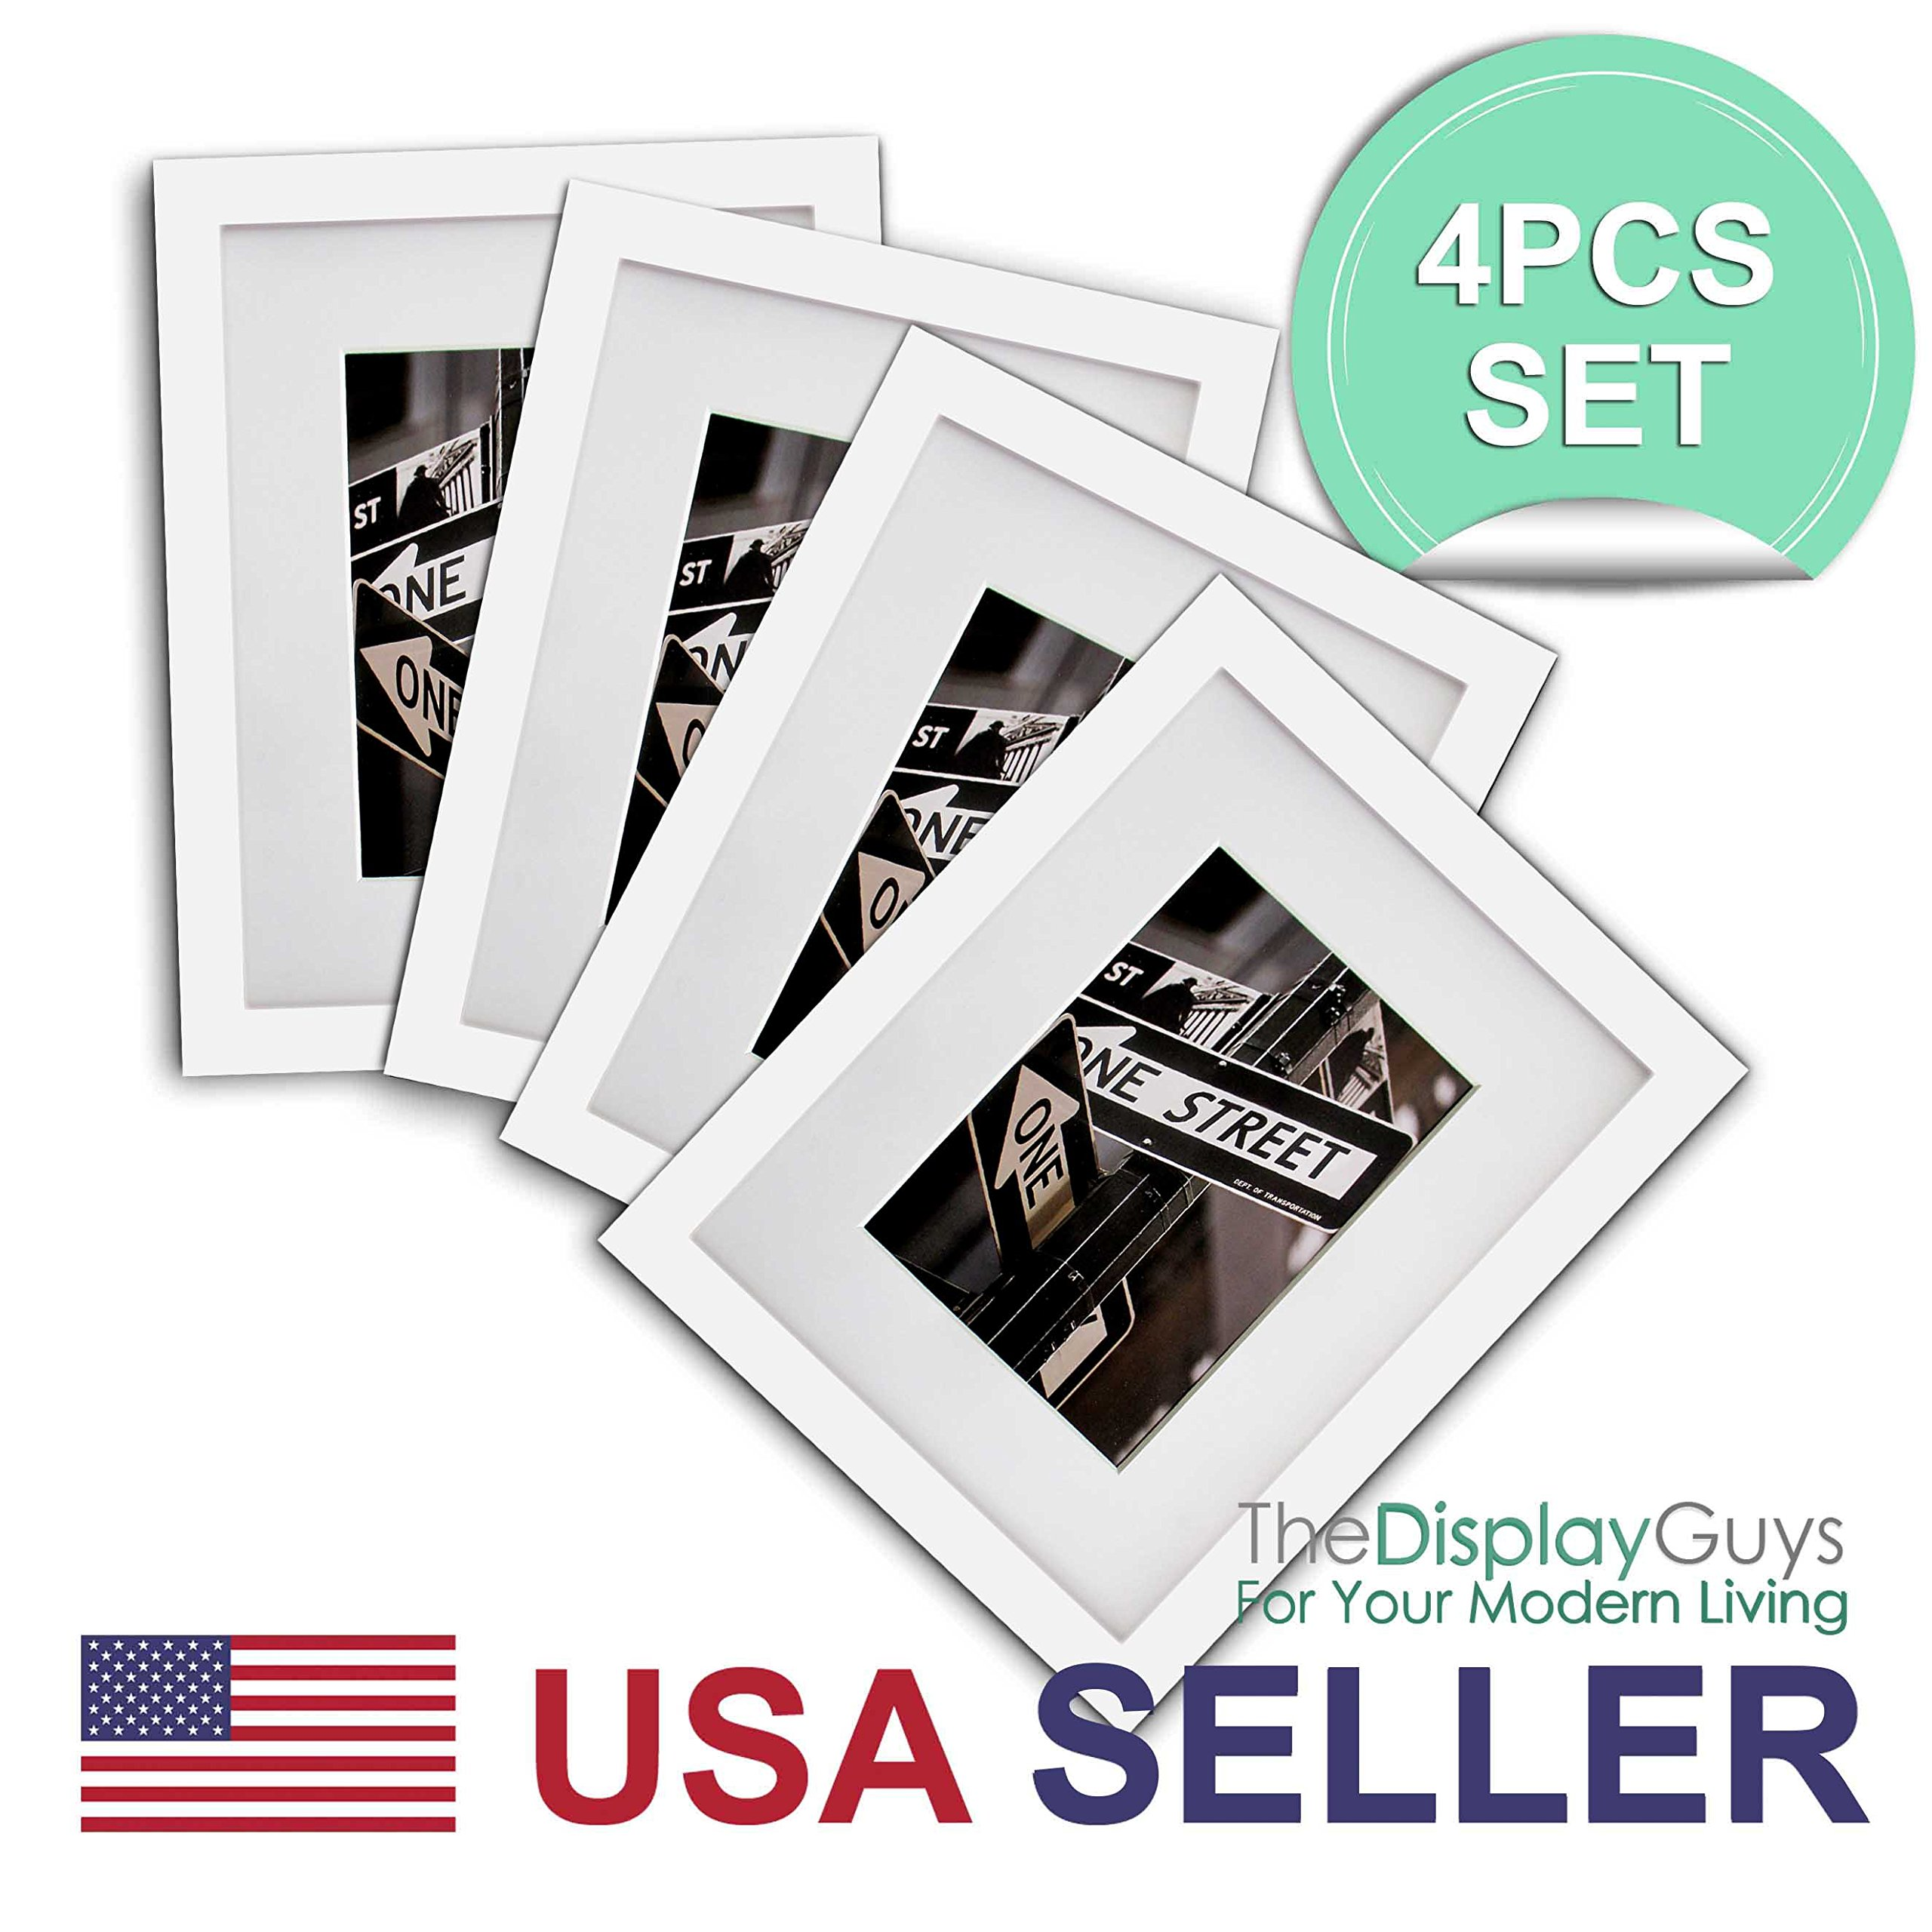 The Display Guys~ 4 Sets 11x14 inches White Solid Pine Wood Photo Frame, Tempered Glass, Luxury Made Affordable, with White Core Mat Boards for 8x10 Picture + Collage Mat Boards for 2-5x7 Pictures